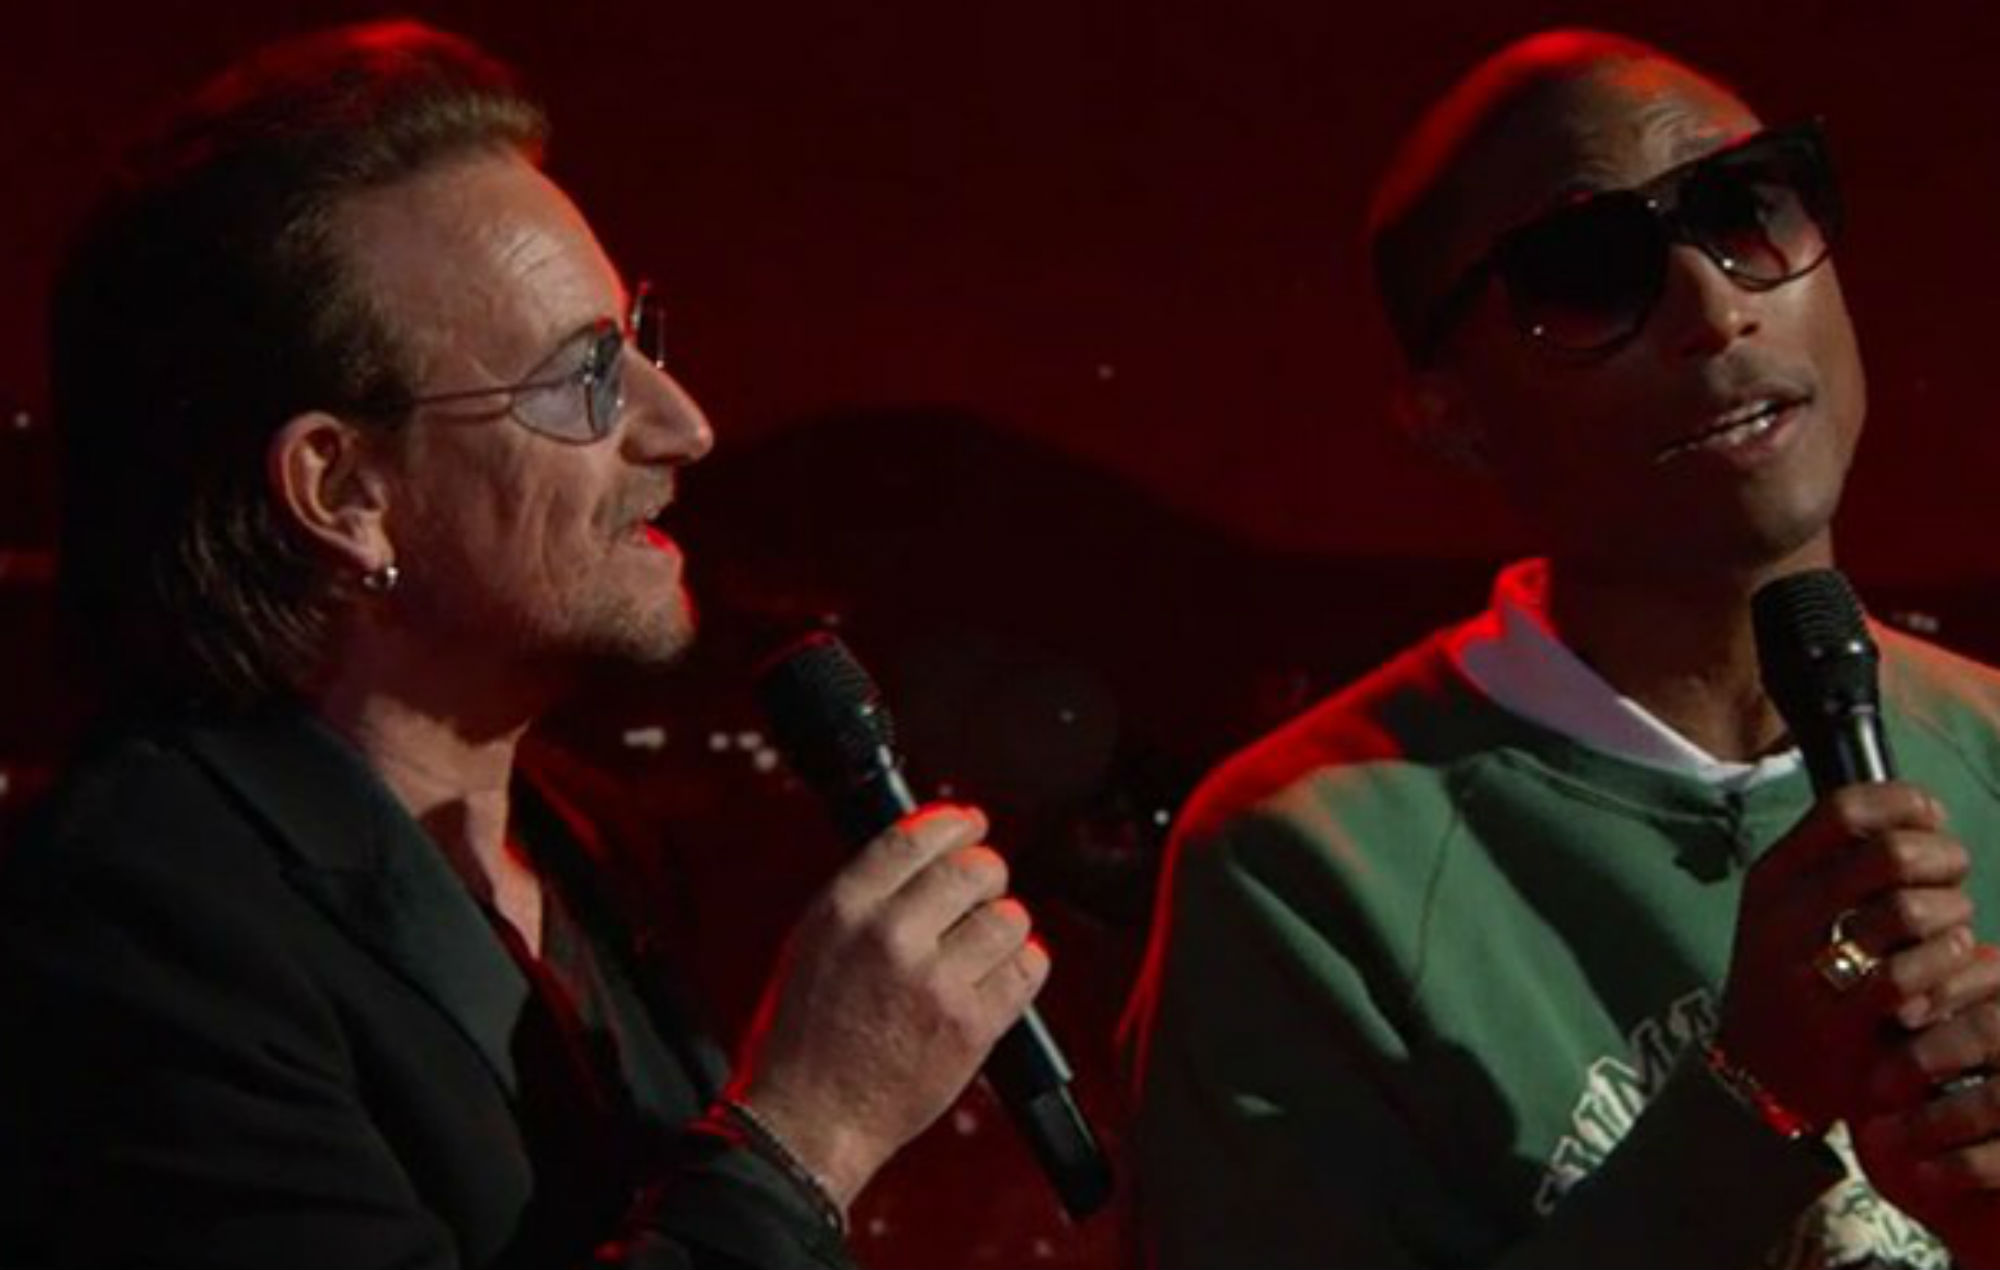 Watch Bono And Pharrell Williams Cover The Bee Gees